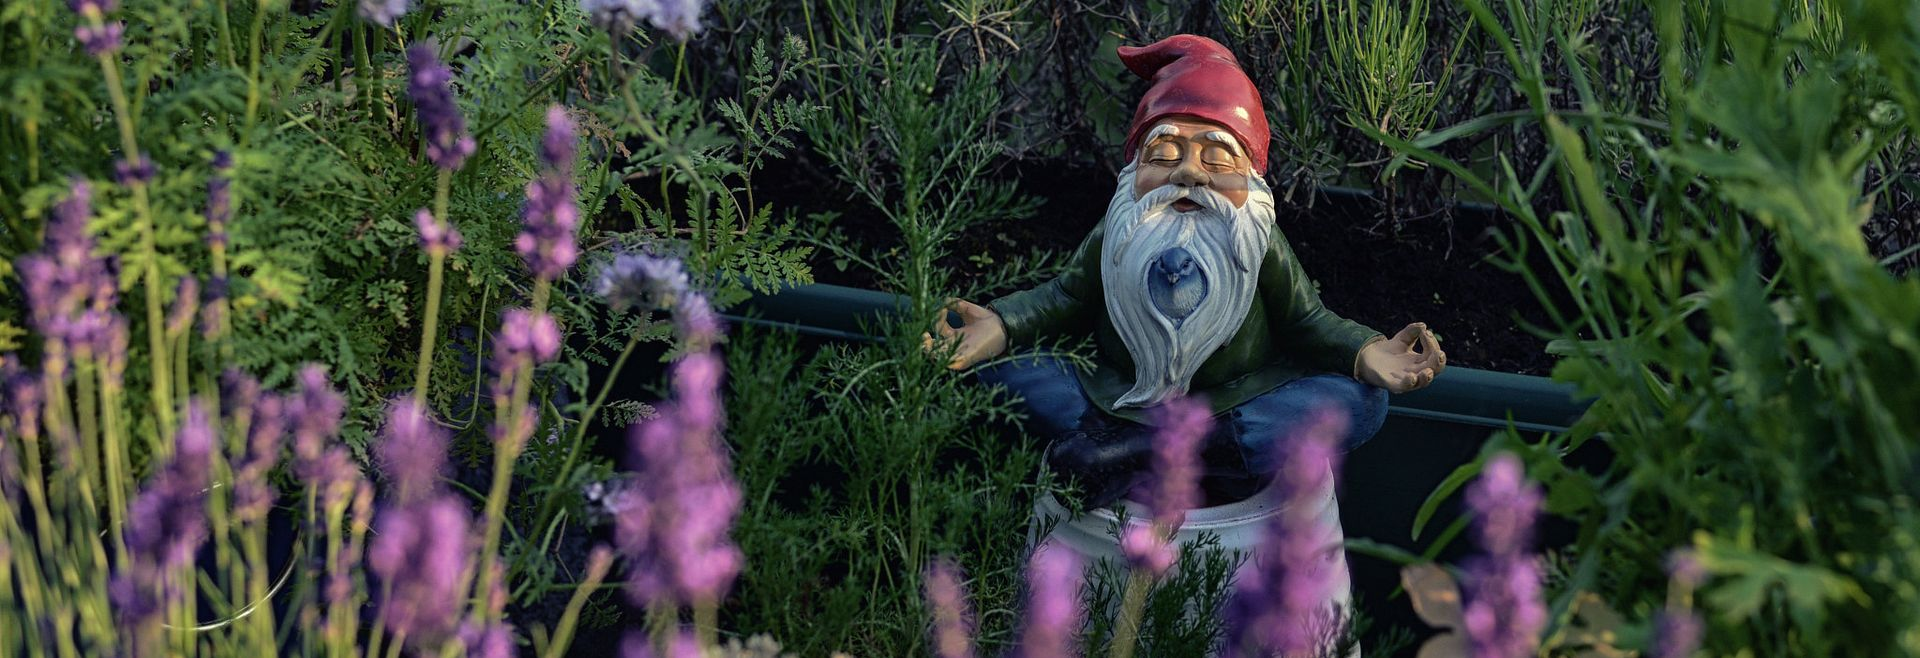 Gnome in the garden meditating